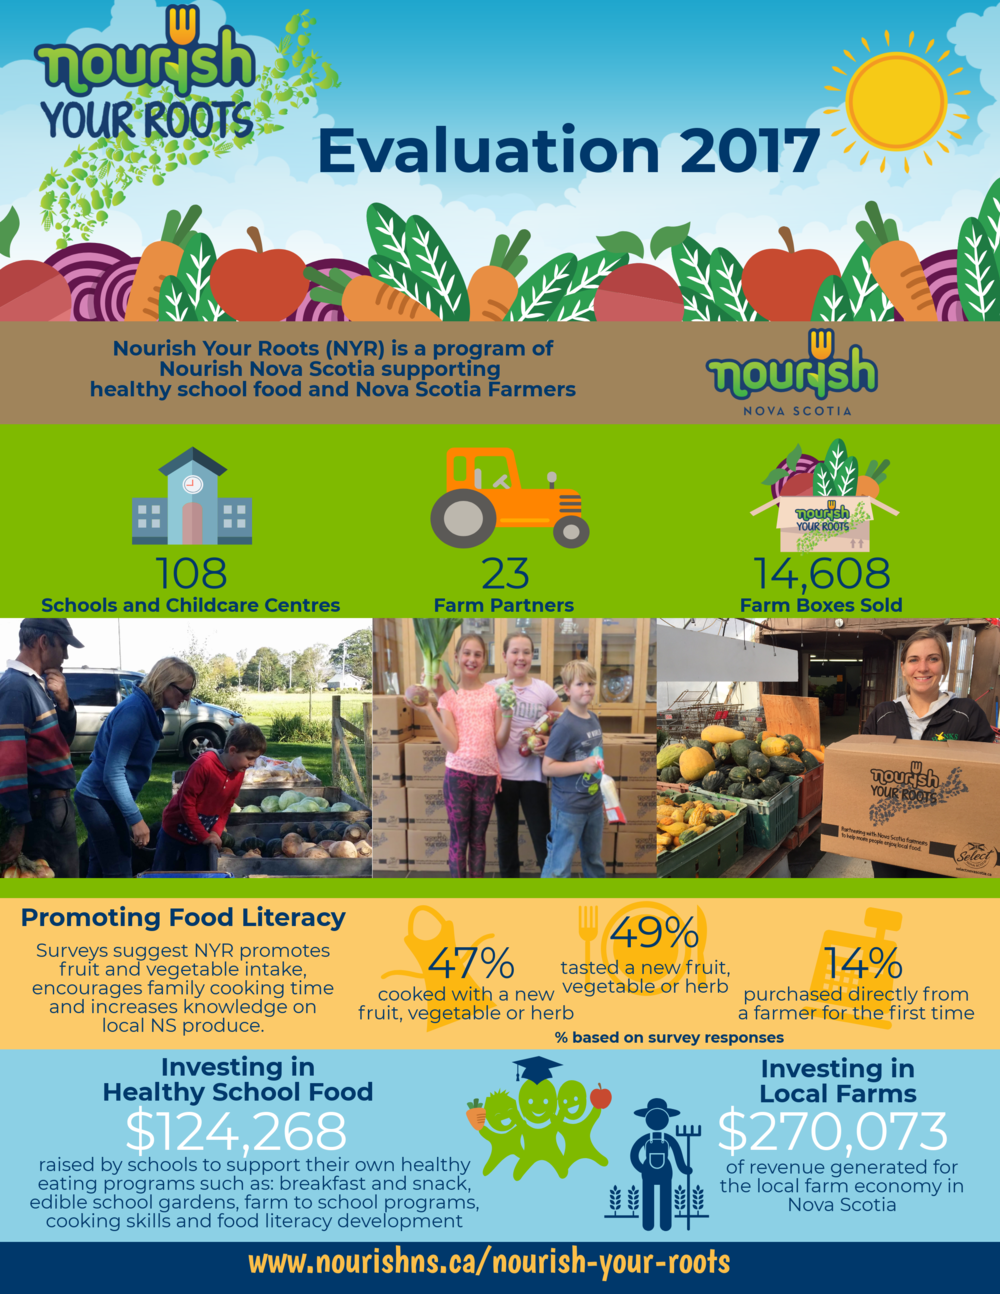 2017 Nourish Your Roots Evaluation - Infographic